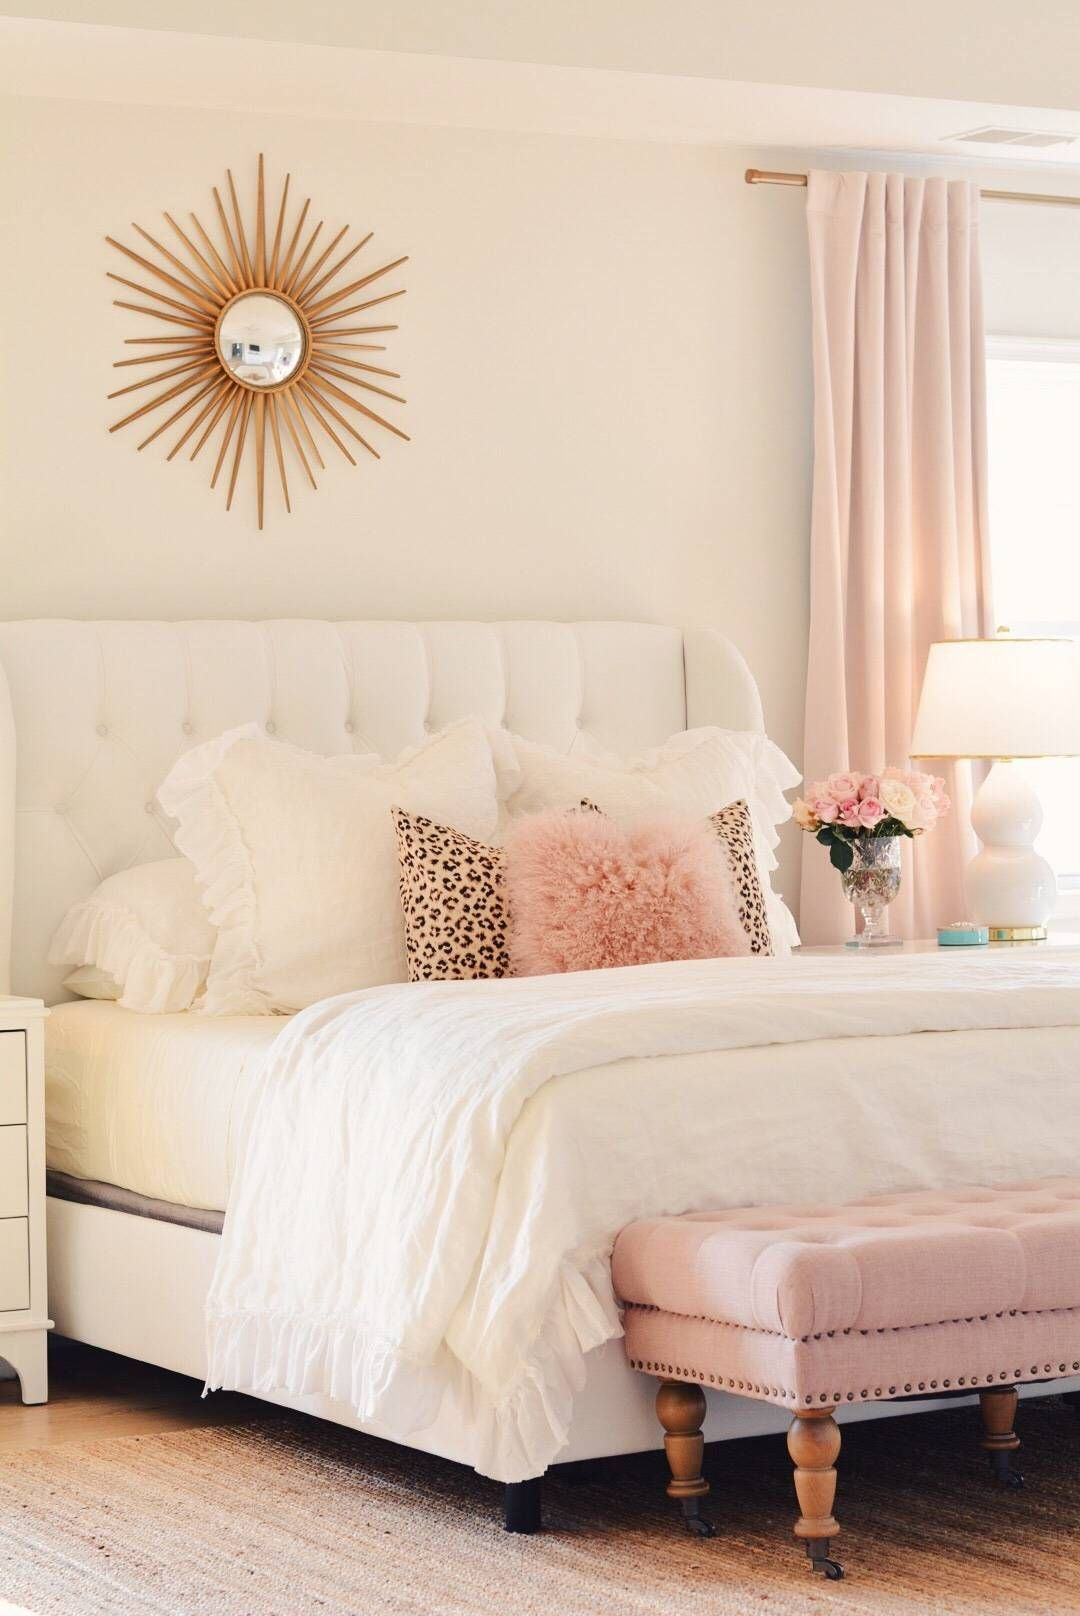 Bedroom Decor Ideas A Romantic Master Bedroom Makeover The Pink Dream Apartment Bedroom Decor Bedroom Decorating Tips Bedroom Decor Home bedroom makeover diy upholstered